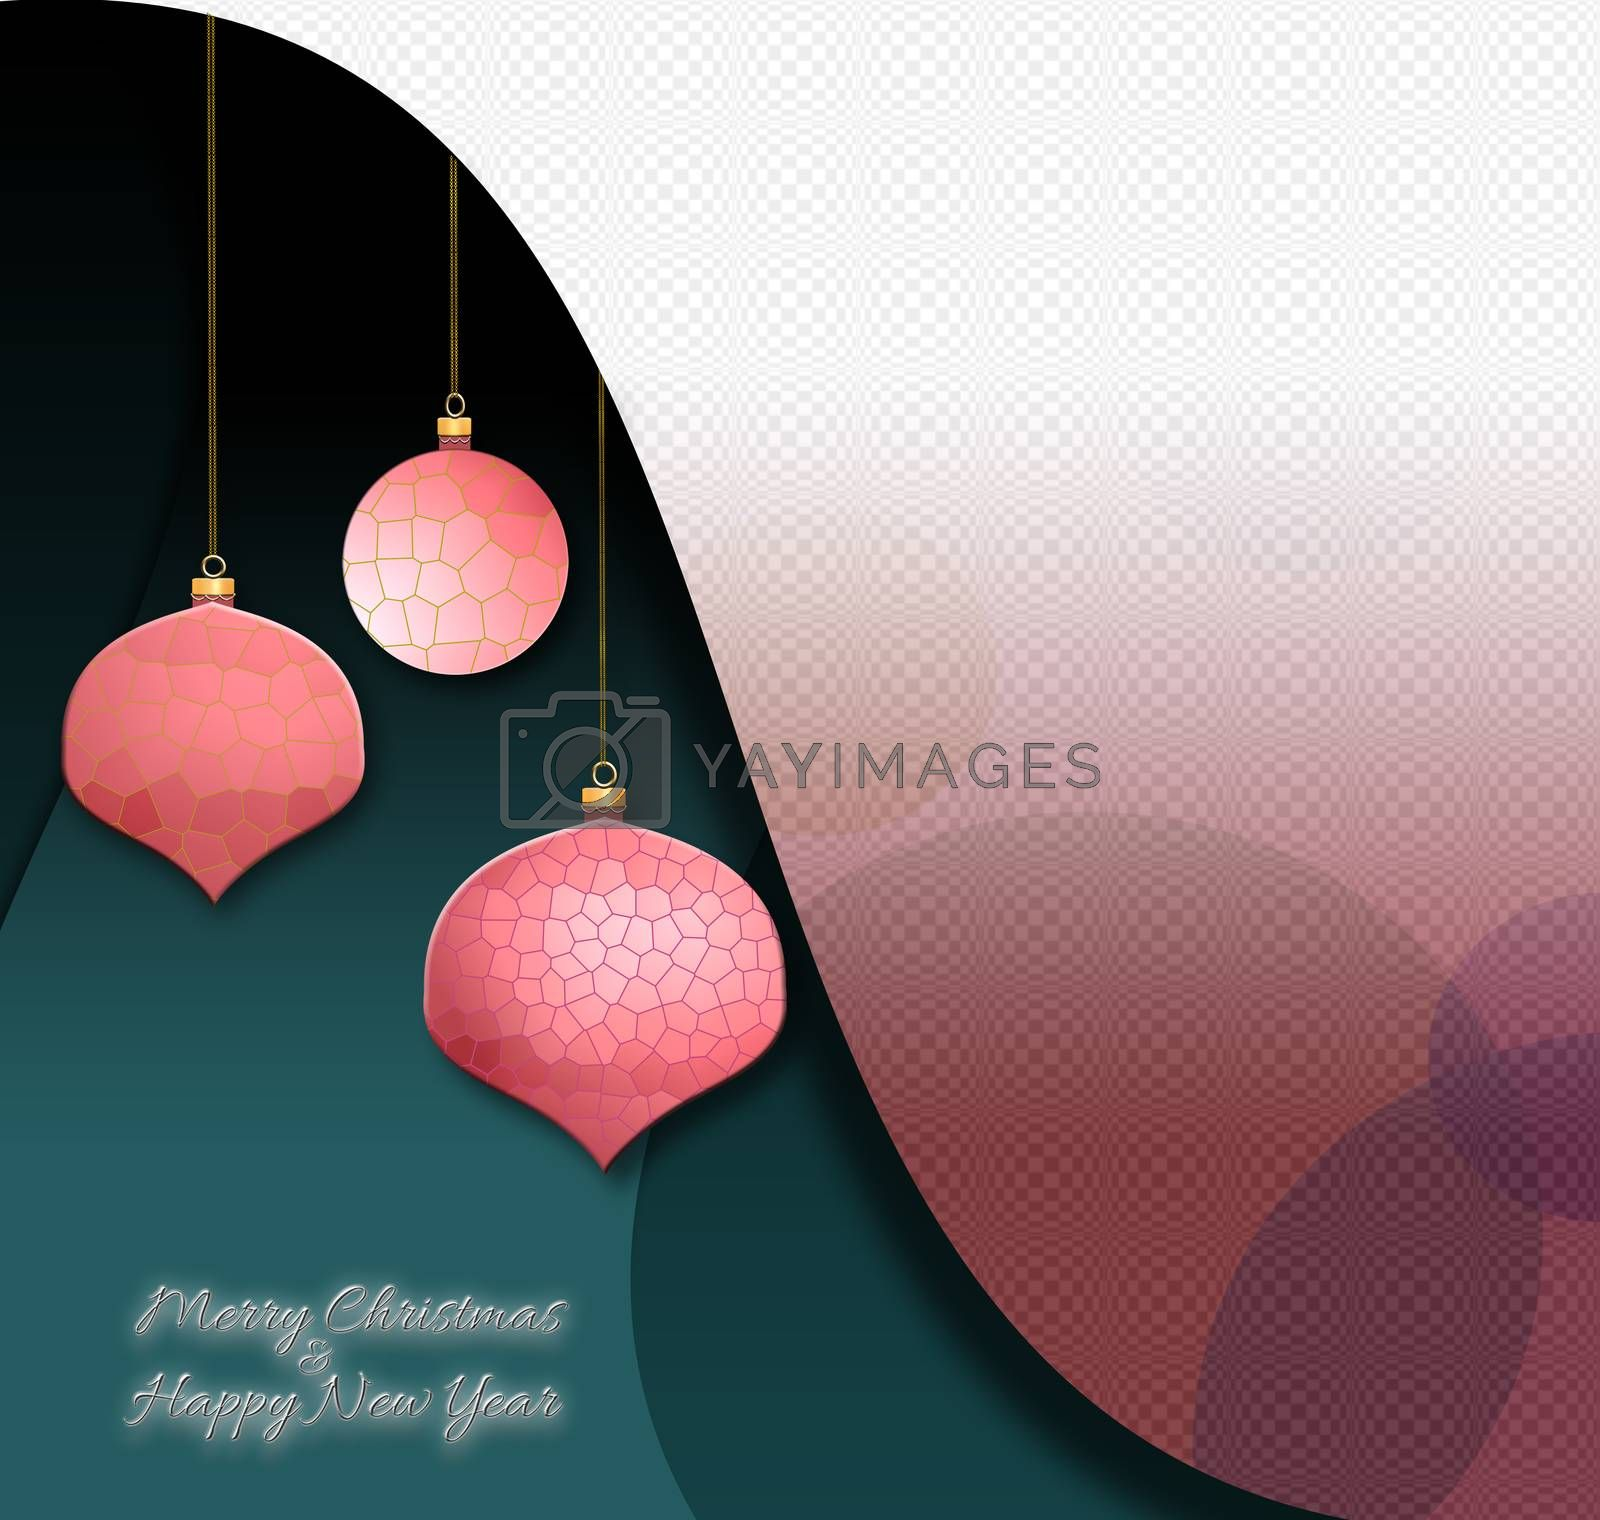 Christmas flyer in modern geometric futuristic style in green pink white colours. Neon text Merry Christmas Happy New Year. Mock up 3D illustration